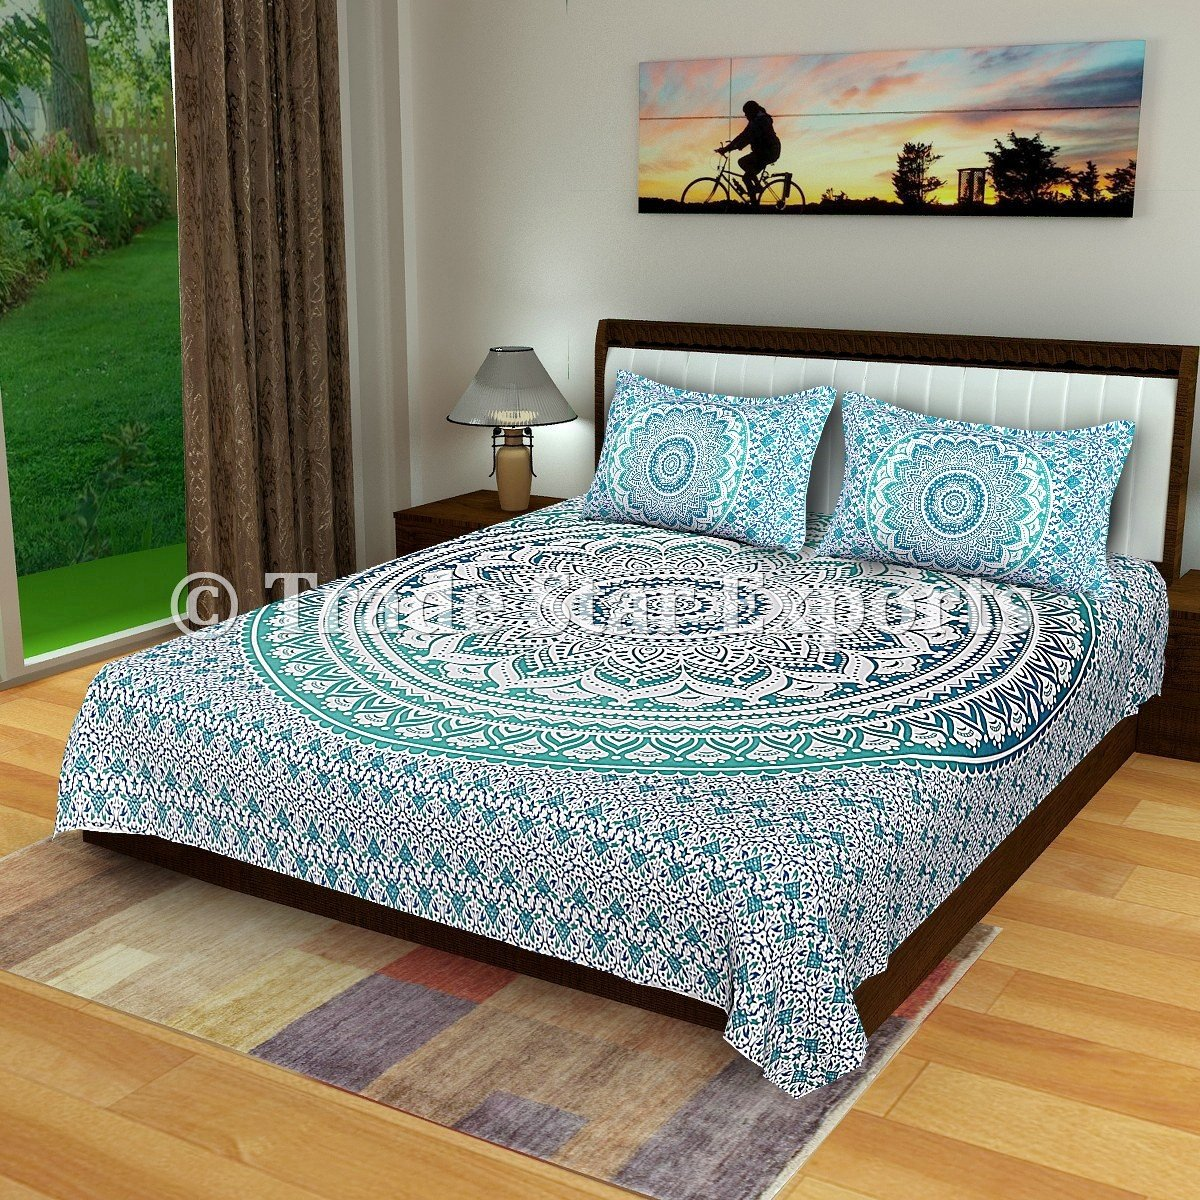 (Pattern 1) - Ombre Mandala Bedding set, Cotton Bed sheet Queen, Boho Blanket throw, Indian Bed cover with two Pillow Cases (Pattern 1) B0755GRQTR パターン2